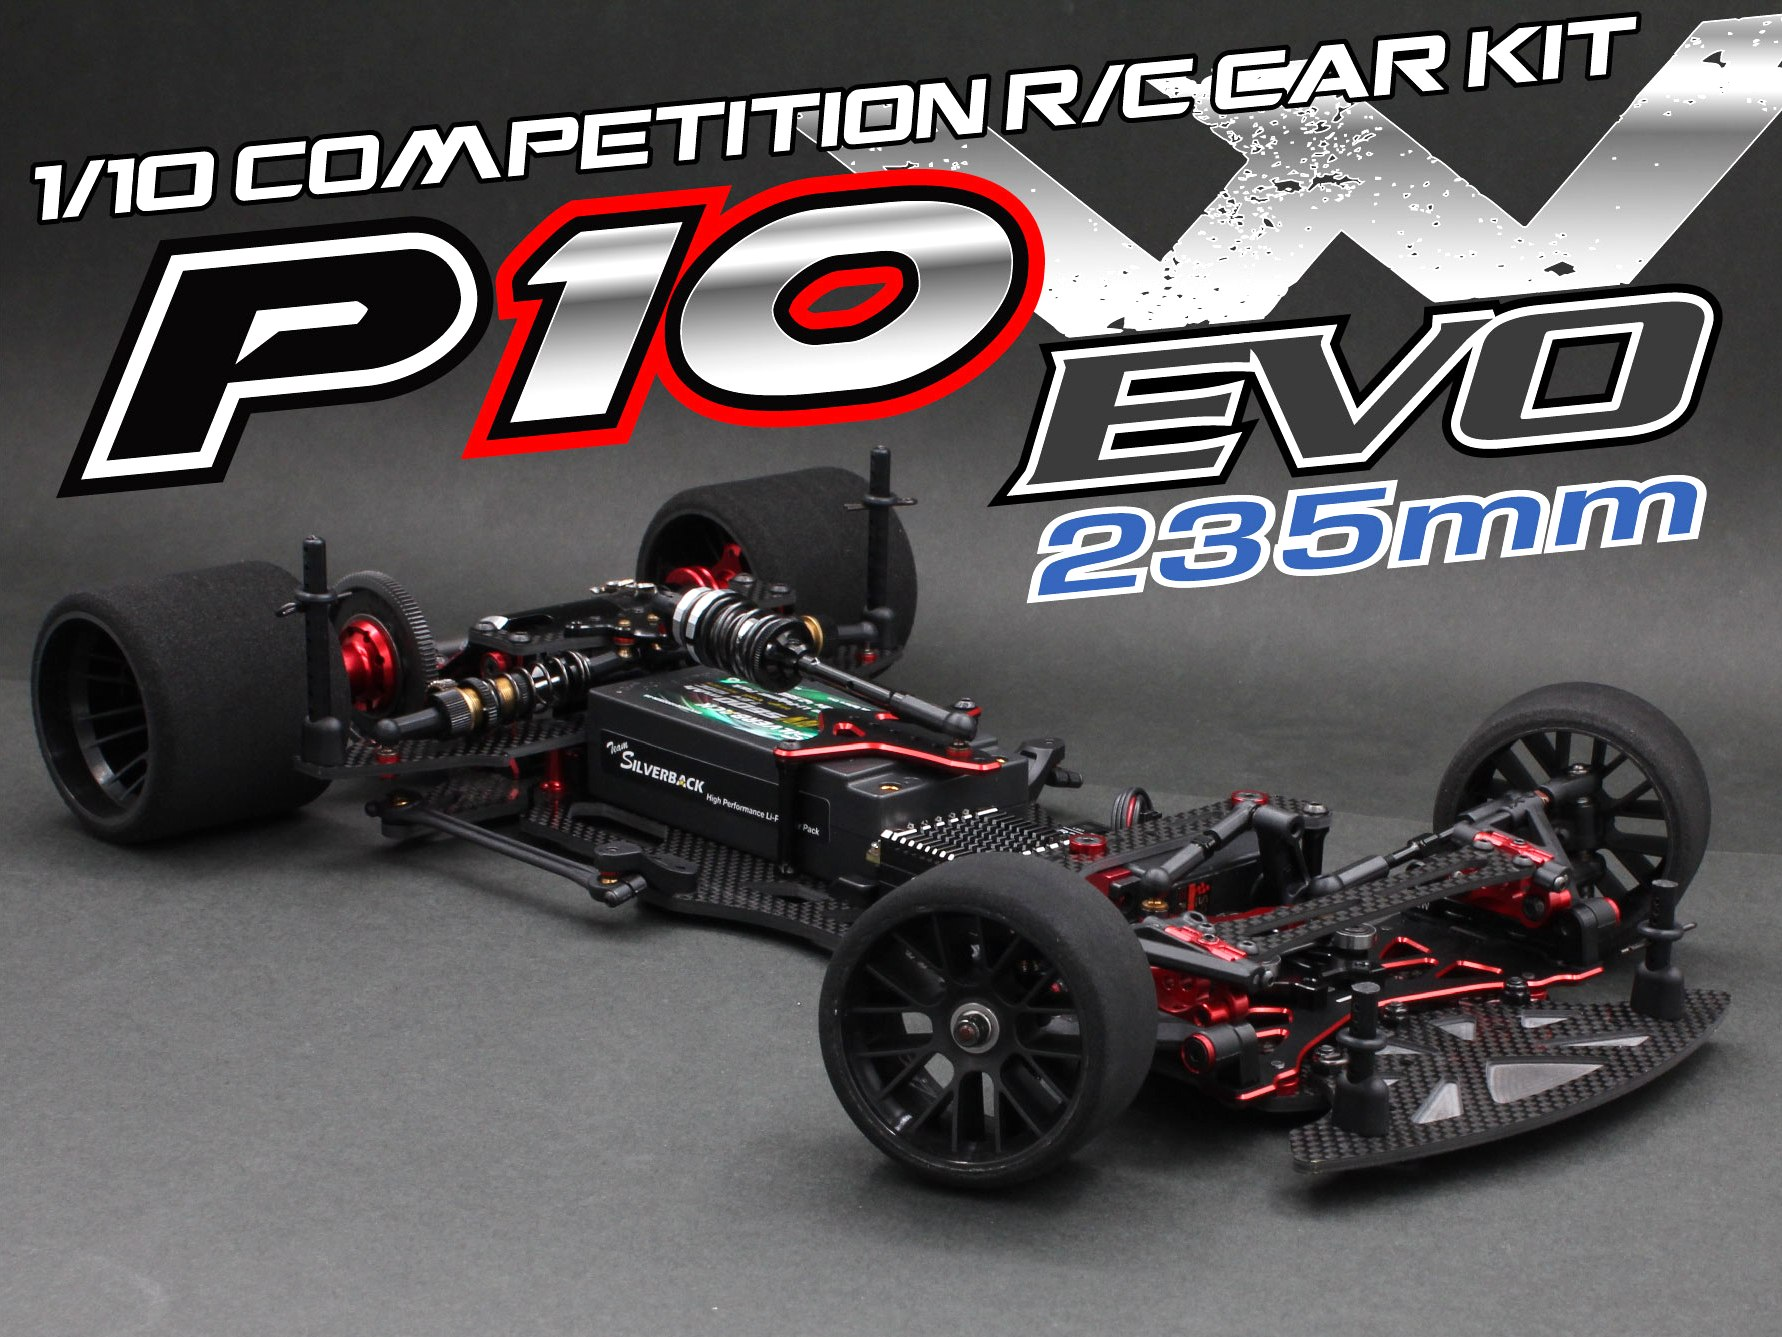 Rapide P10W EVO 1/10 235mm Competition Kit